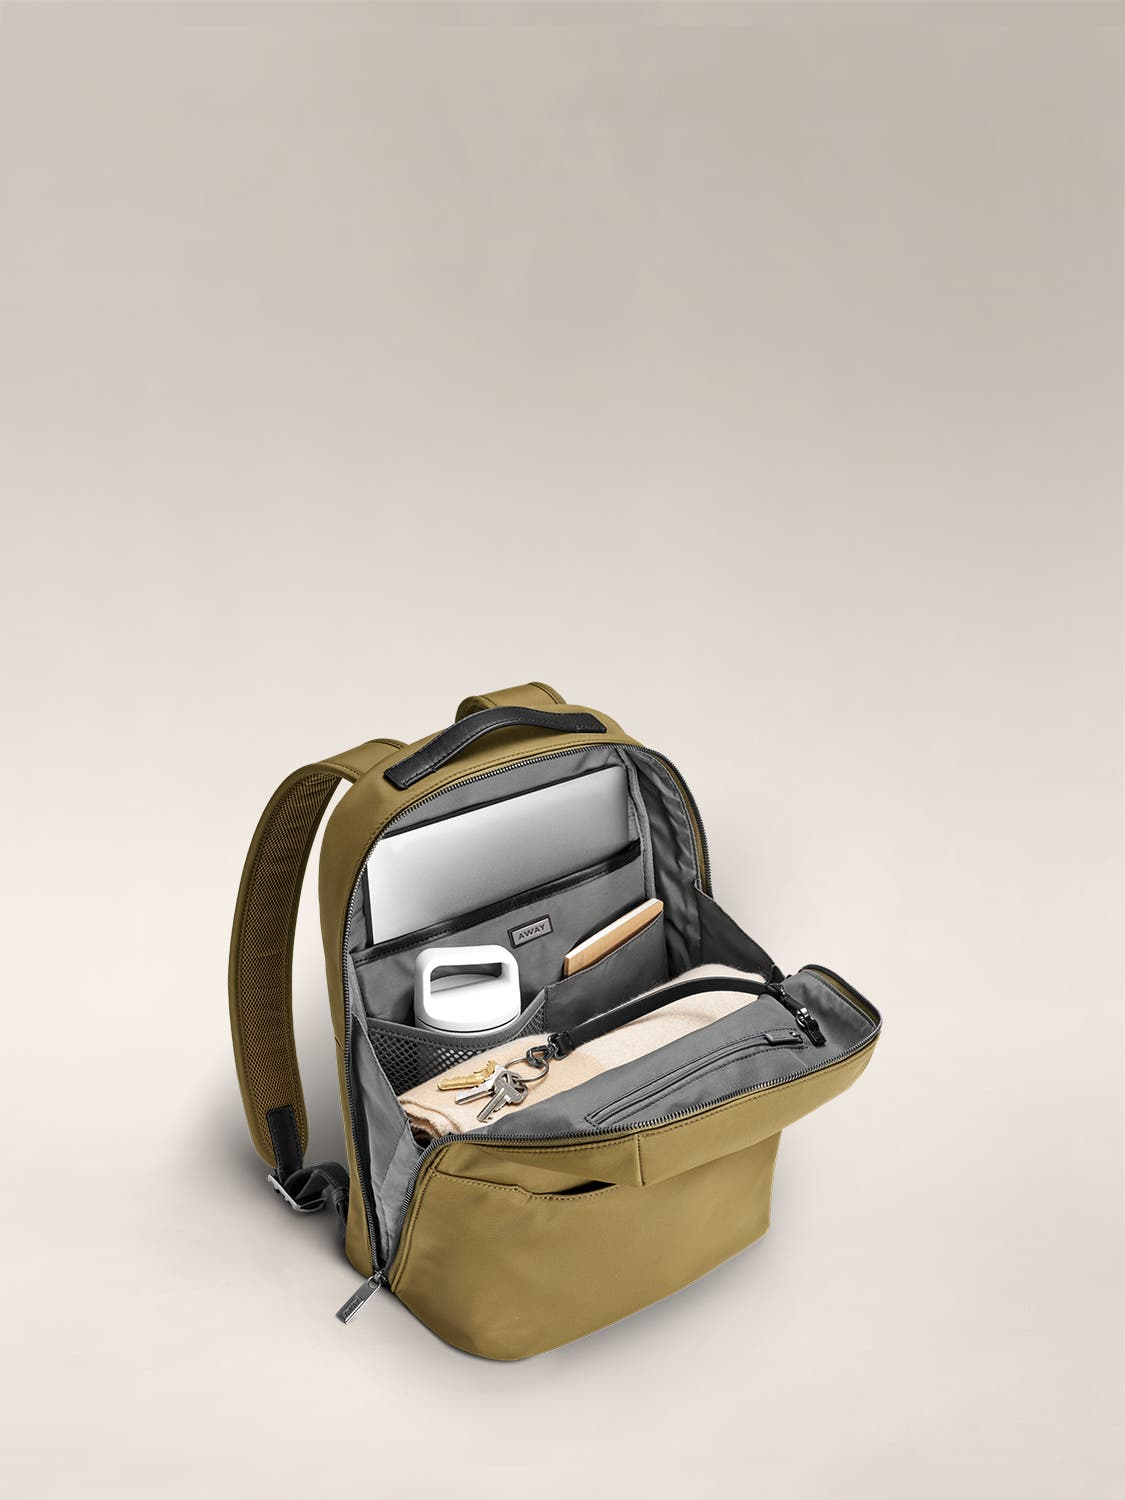 Inside view of a small backpack in moss green with internal pockets organized with various accessories.